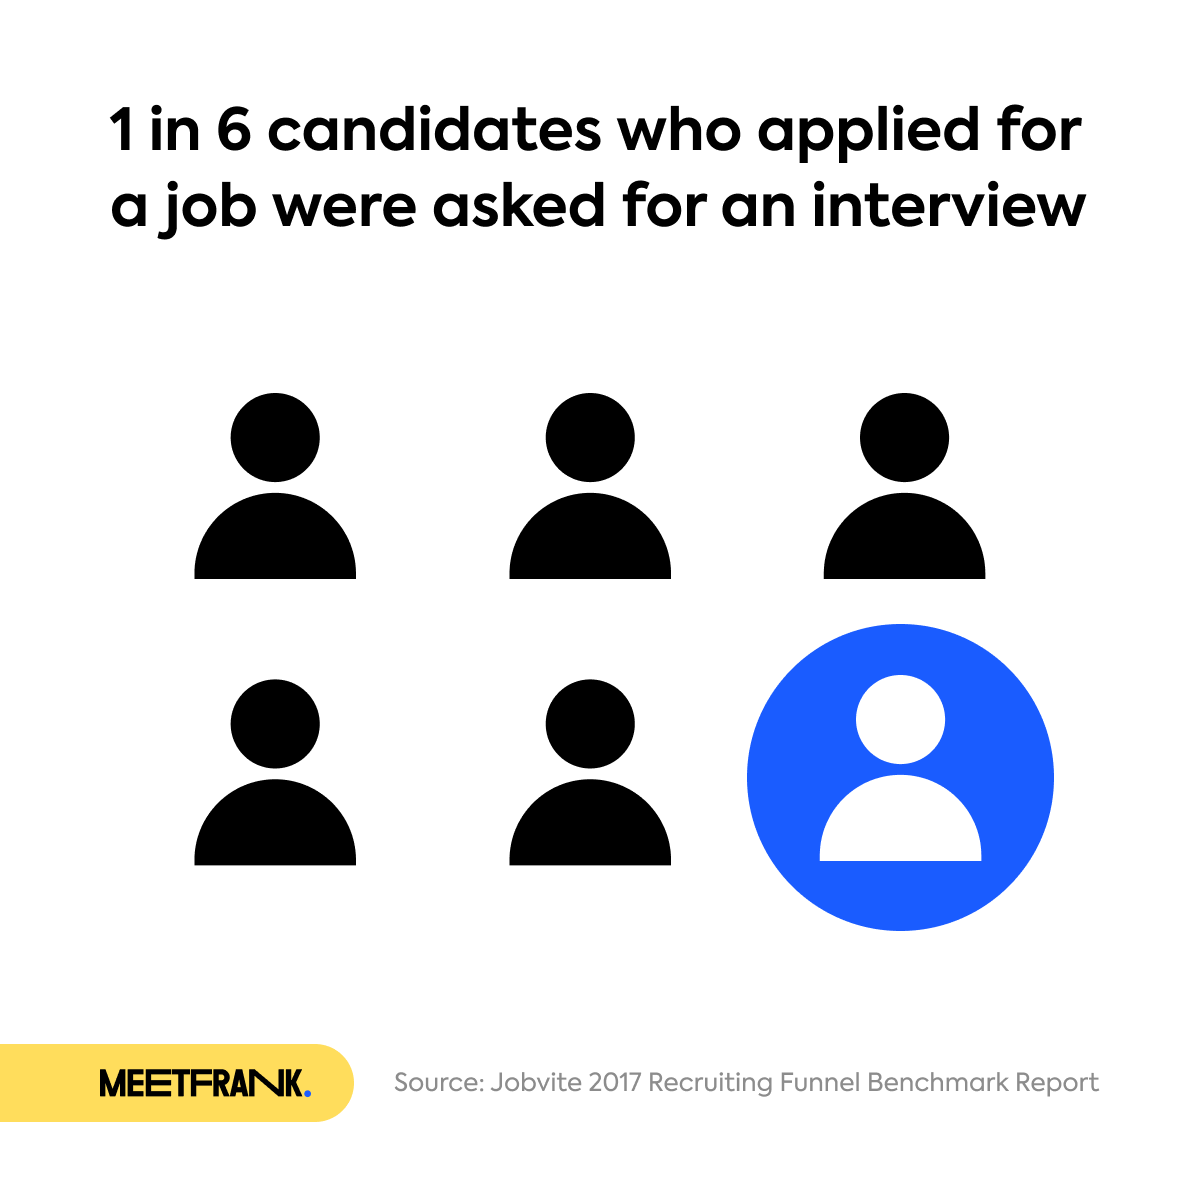 graph about 1 in 6 candidates being invited for an interview